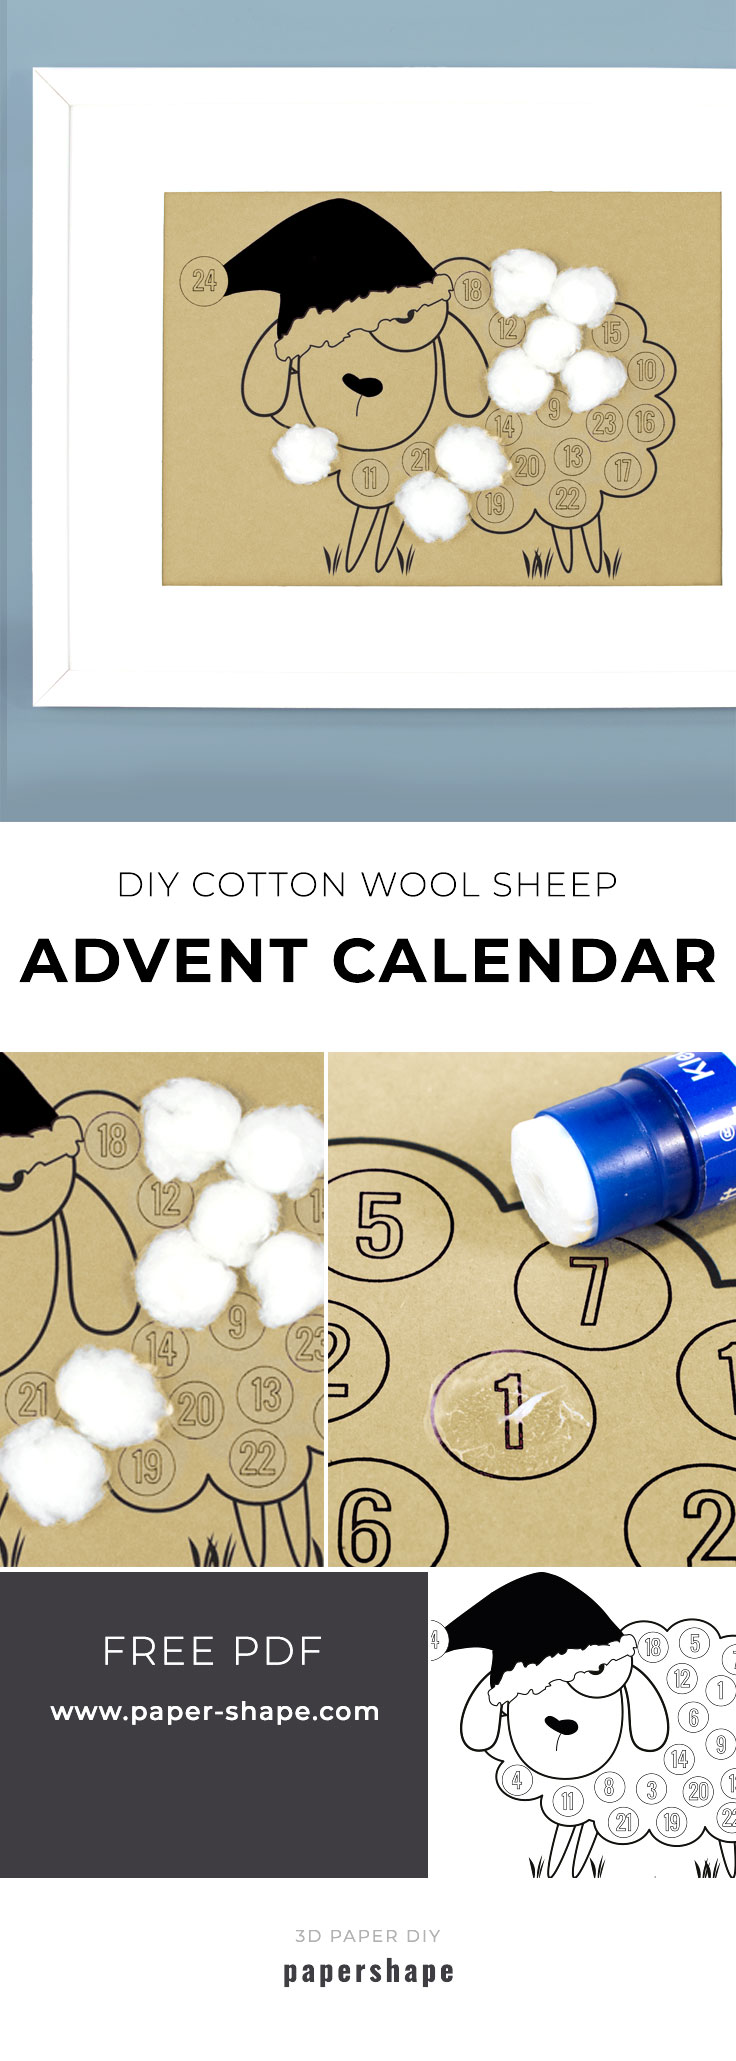 diy cotton wool Advent calender for children with free template from #papershape